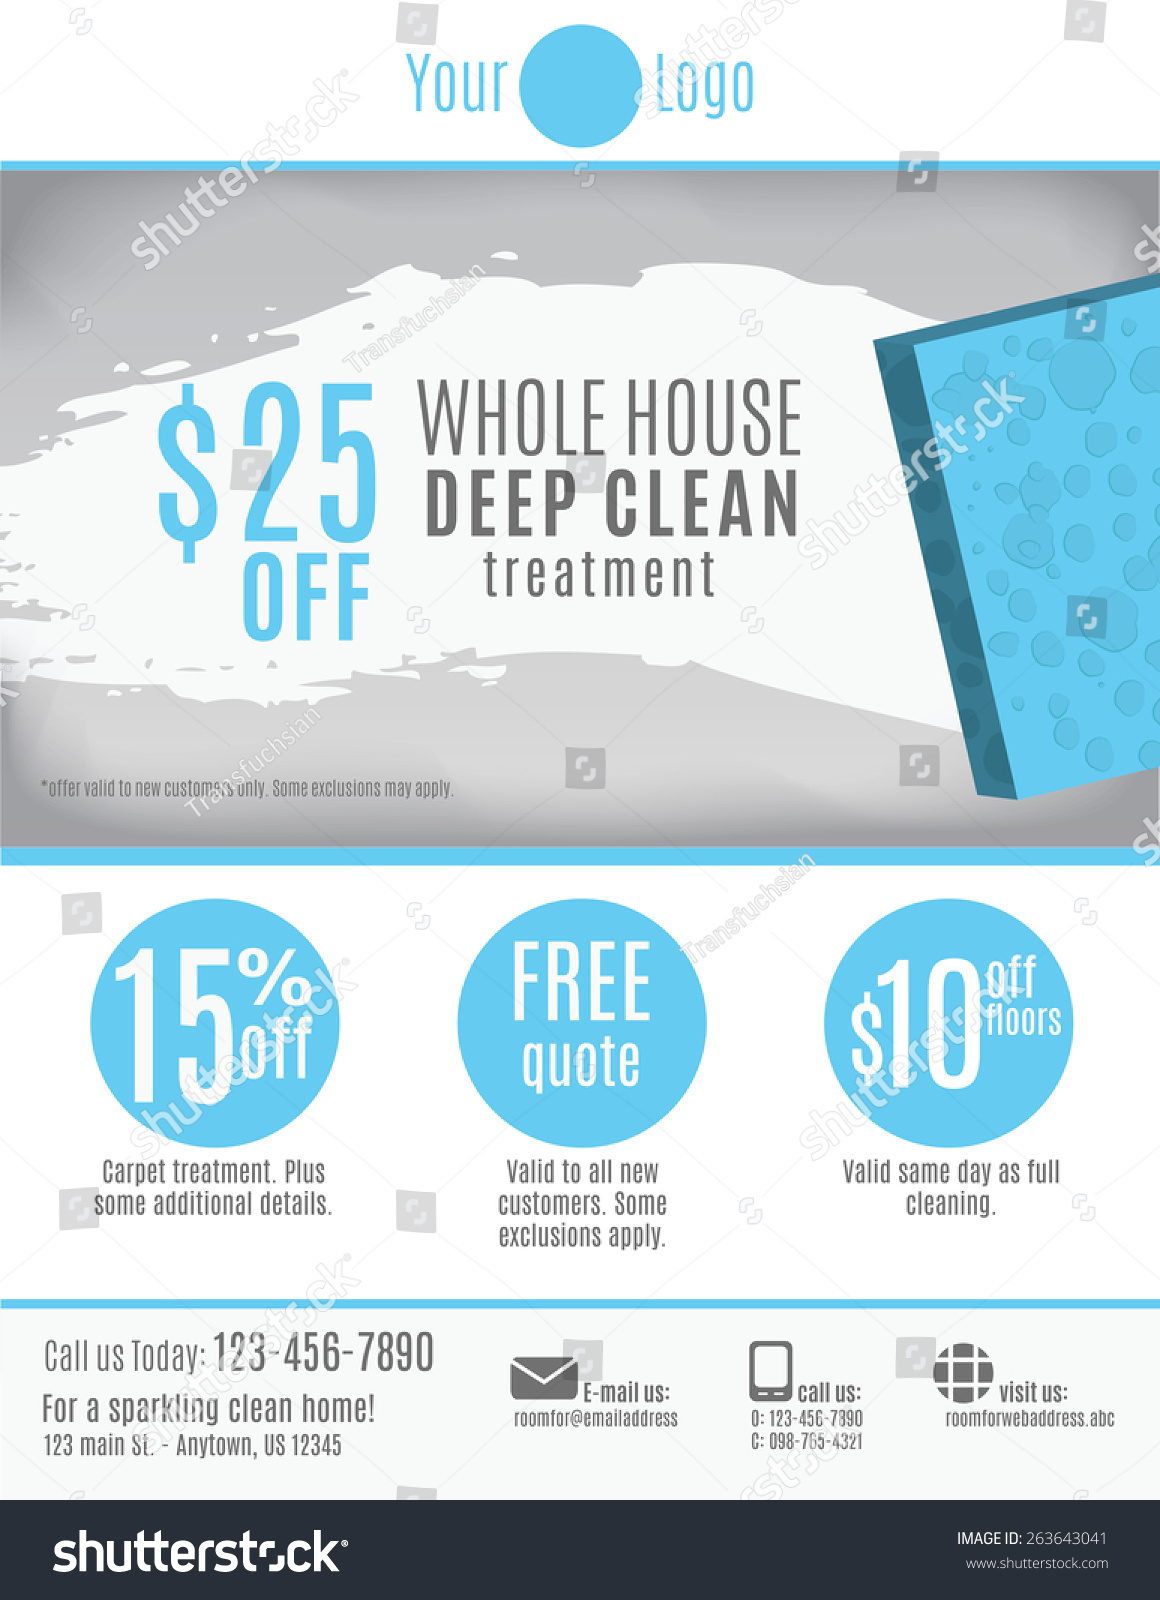 cleaning service flyer template discount coupons stock vector cleaning service flyer template discount coupons and advertisement